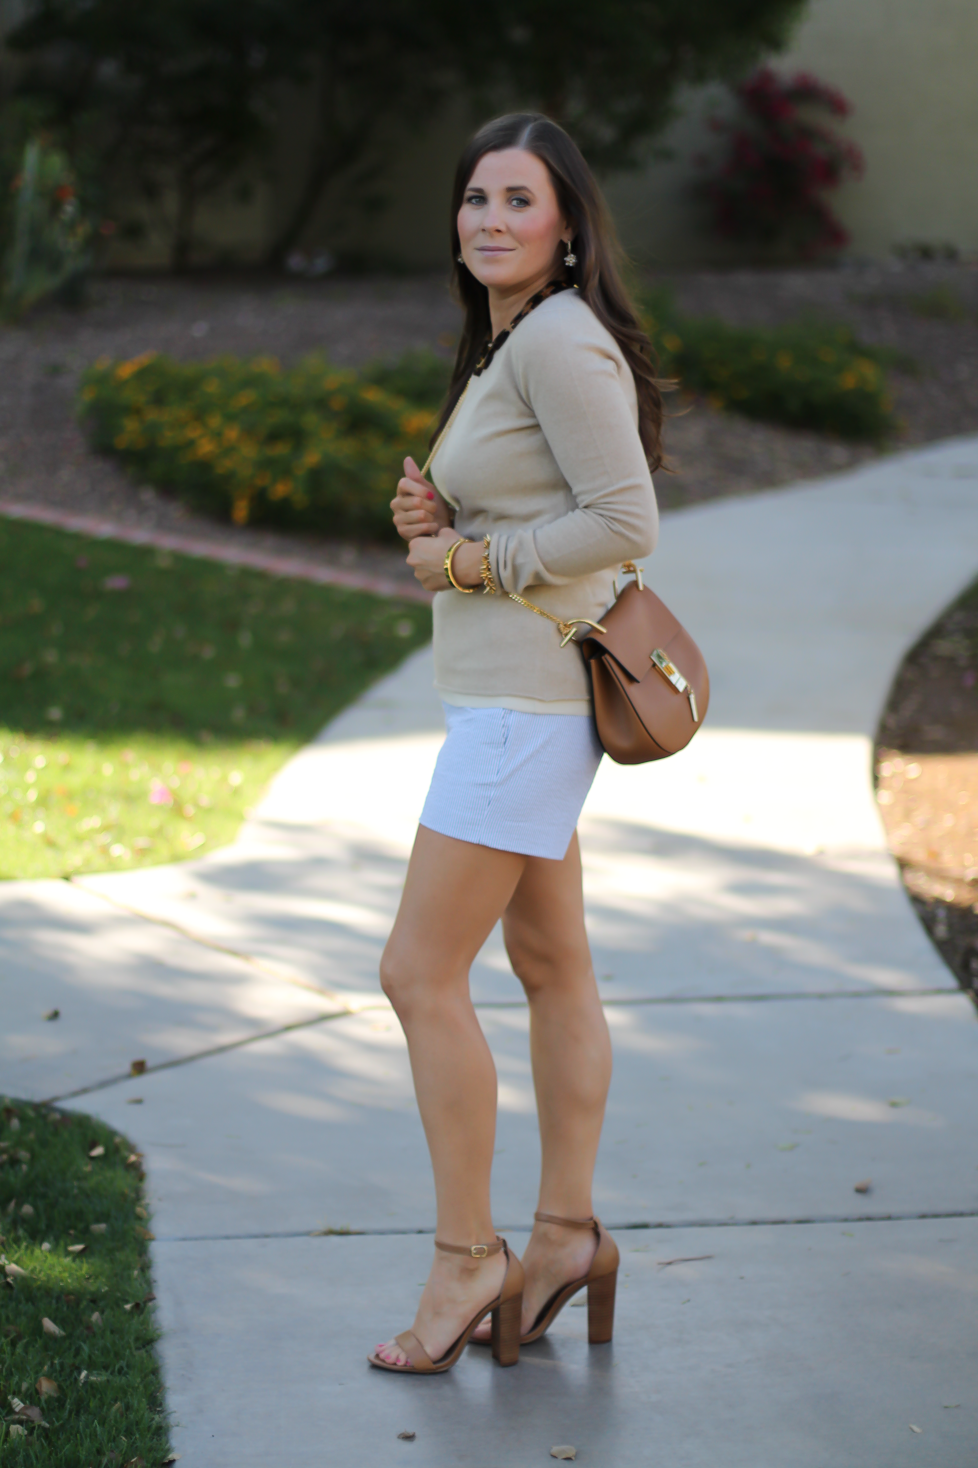 Seersucker Shorts, Tan Cashmere Sweater, Tan Leather Ankle Strap Heels, Tan Leather Chain Strap Bag, Ann Taylor, J.Crew, Steve Madden, Chloe  4